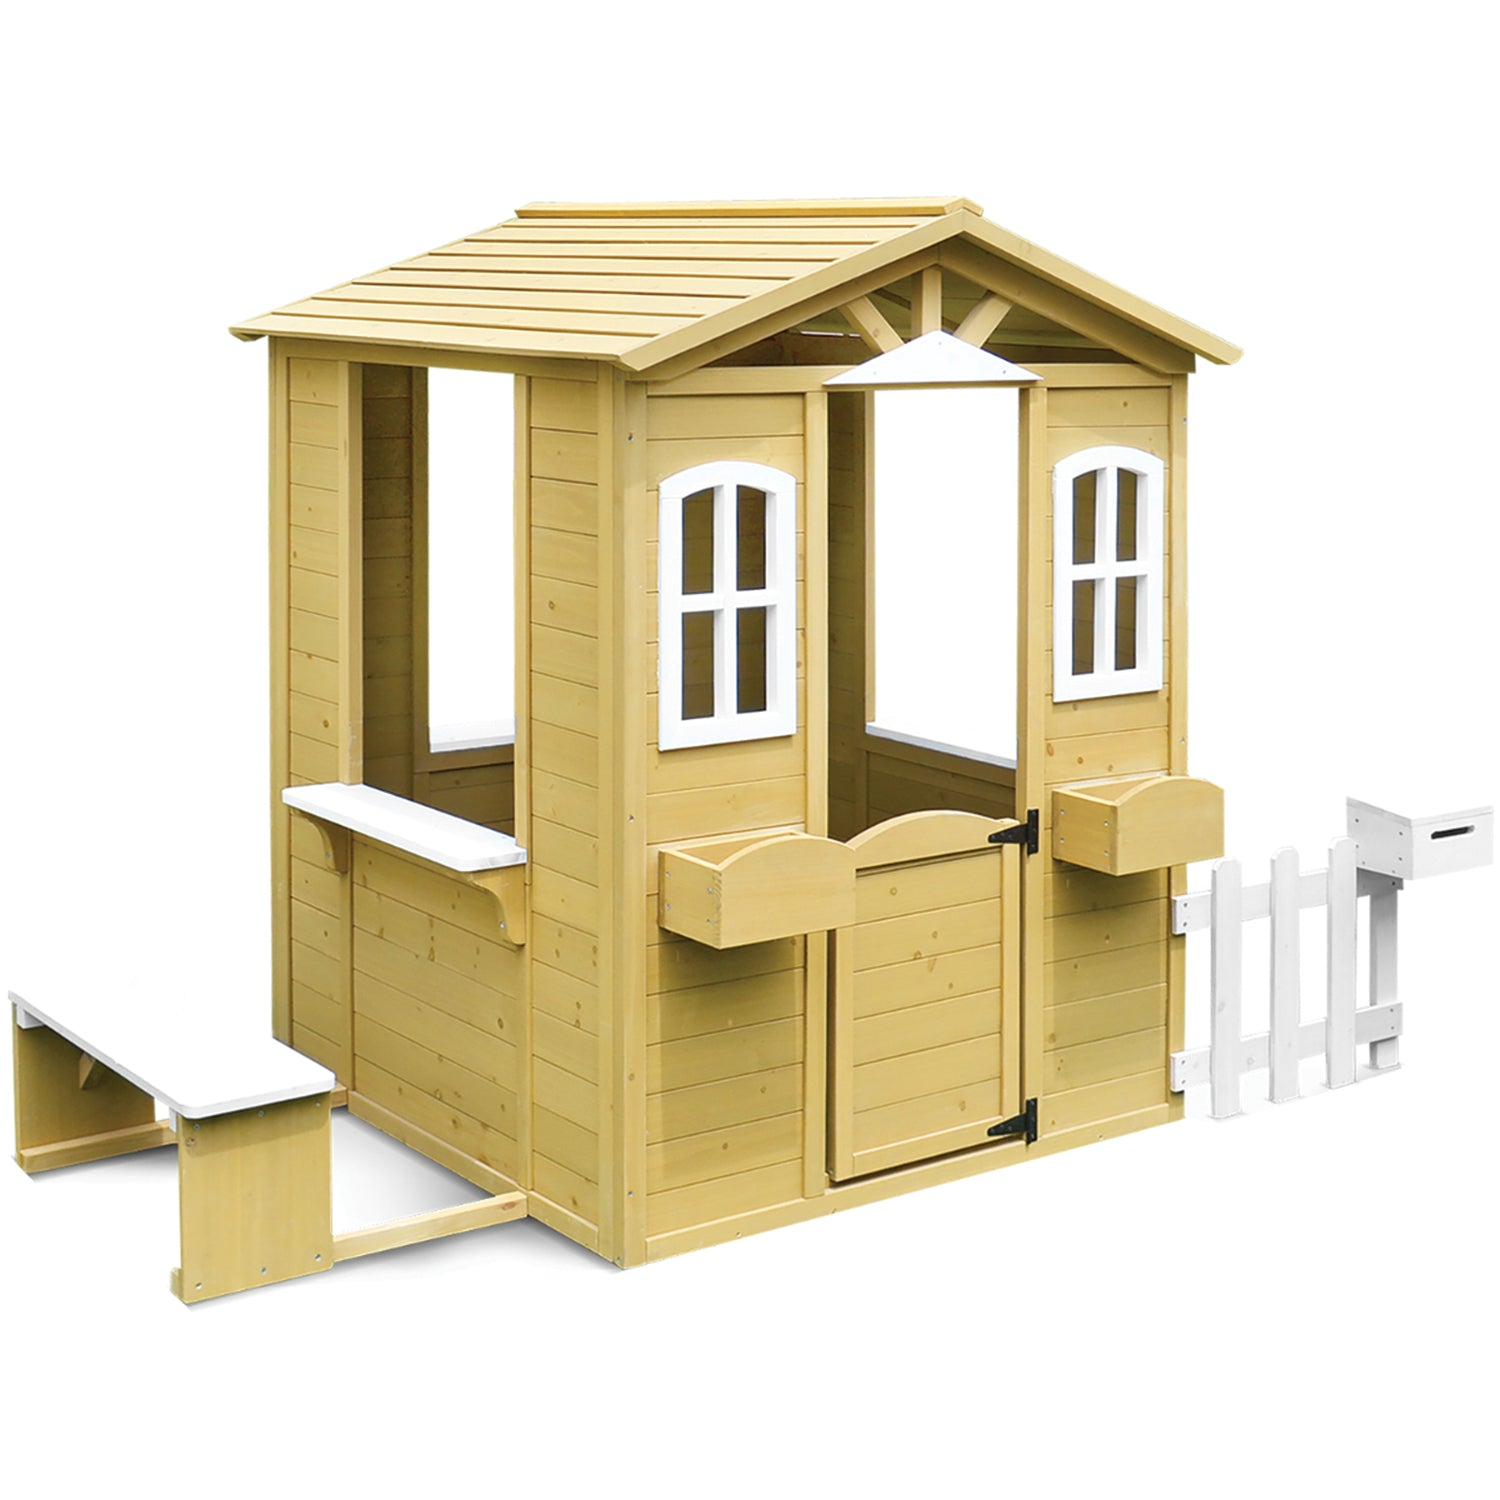 Lifespan Kids Teddy Cubby House with Picket Fence and Floor